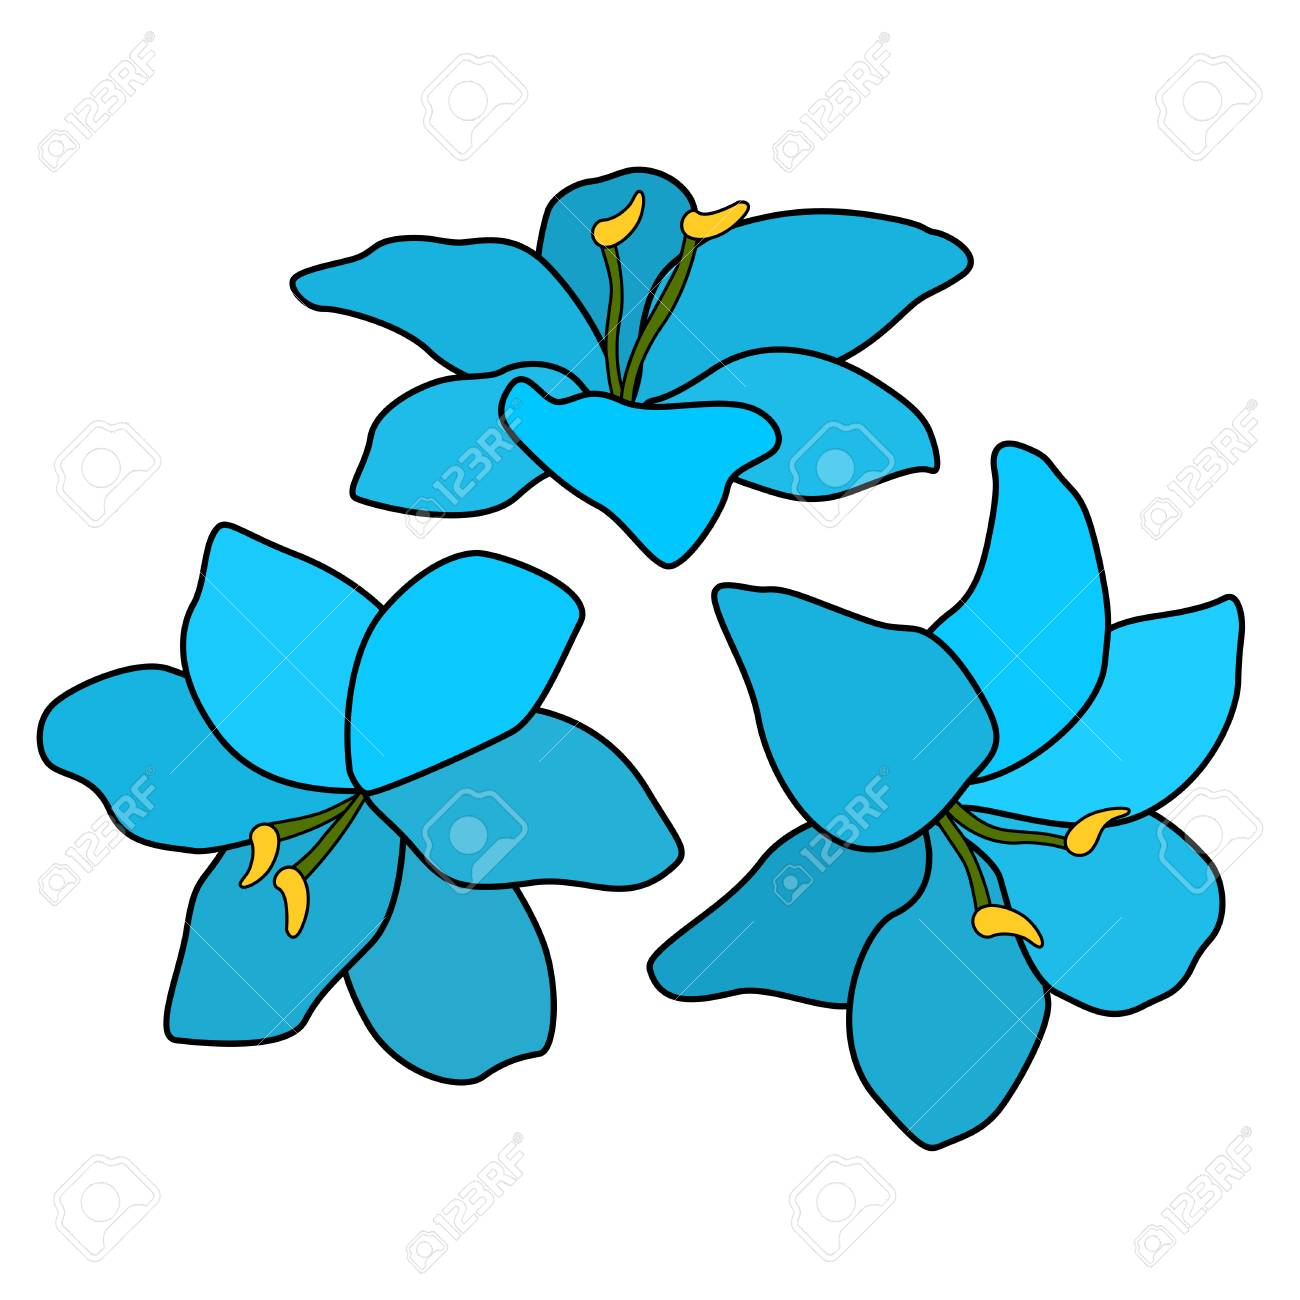 Circle Of Blue Flowers Floral Ornament Six Petals And Grass Royalty Free Cliparts Vectors And Stock Illustration Image 112340639